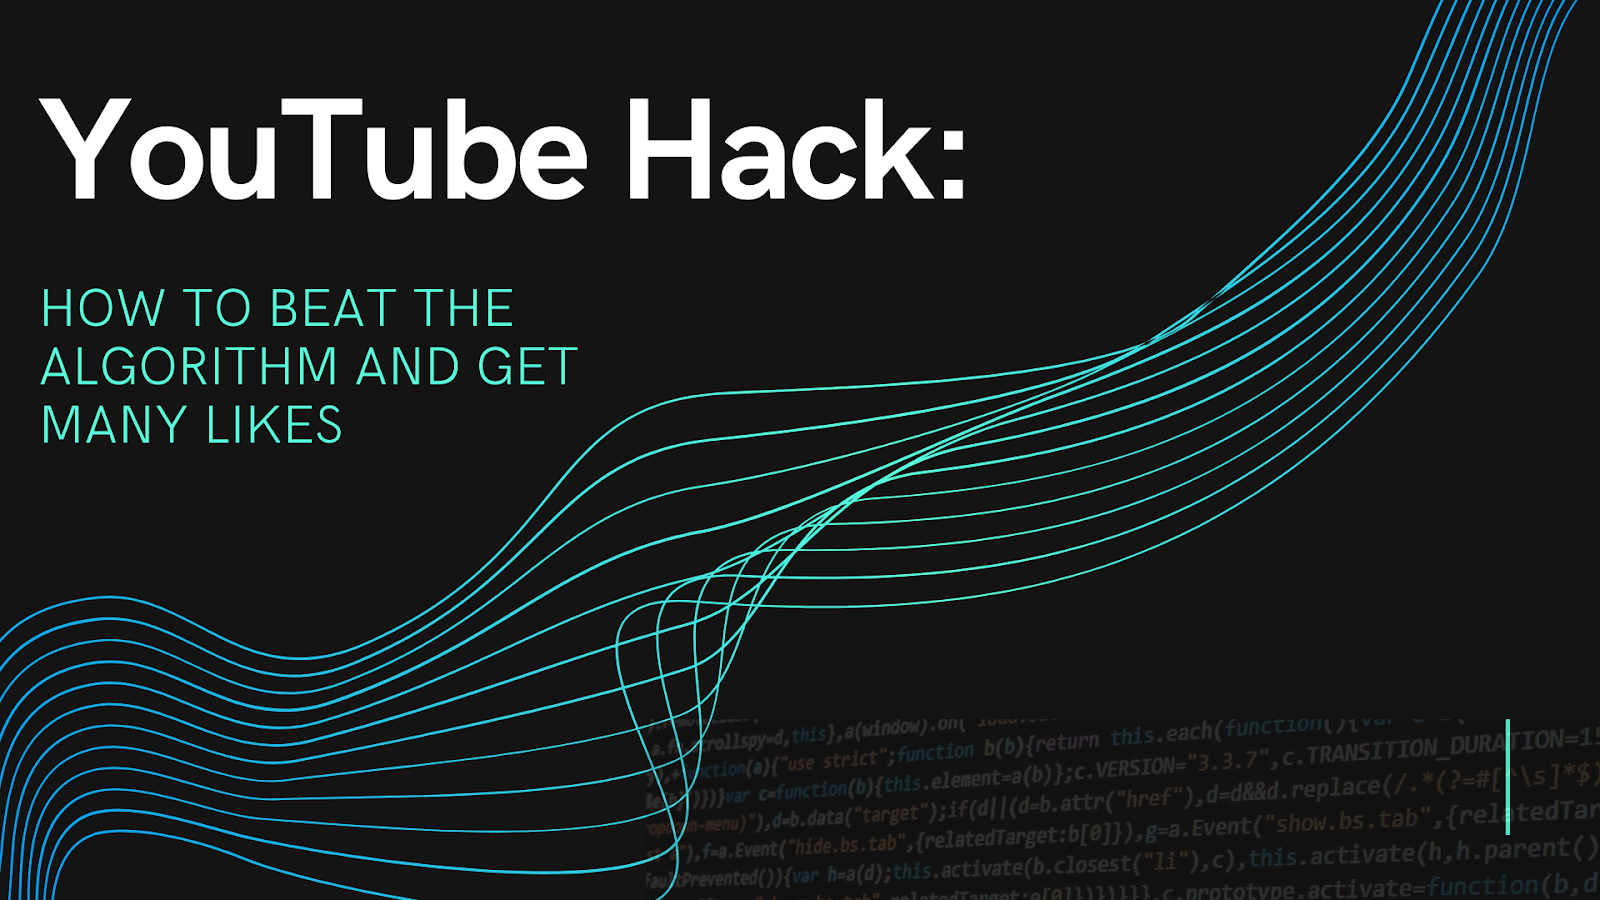 YouTube Hack: How to Beat the Algorithm and Get Many Likes